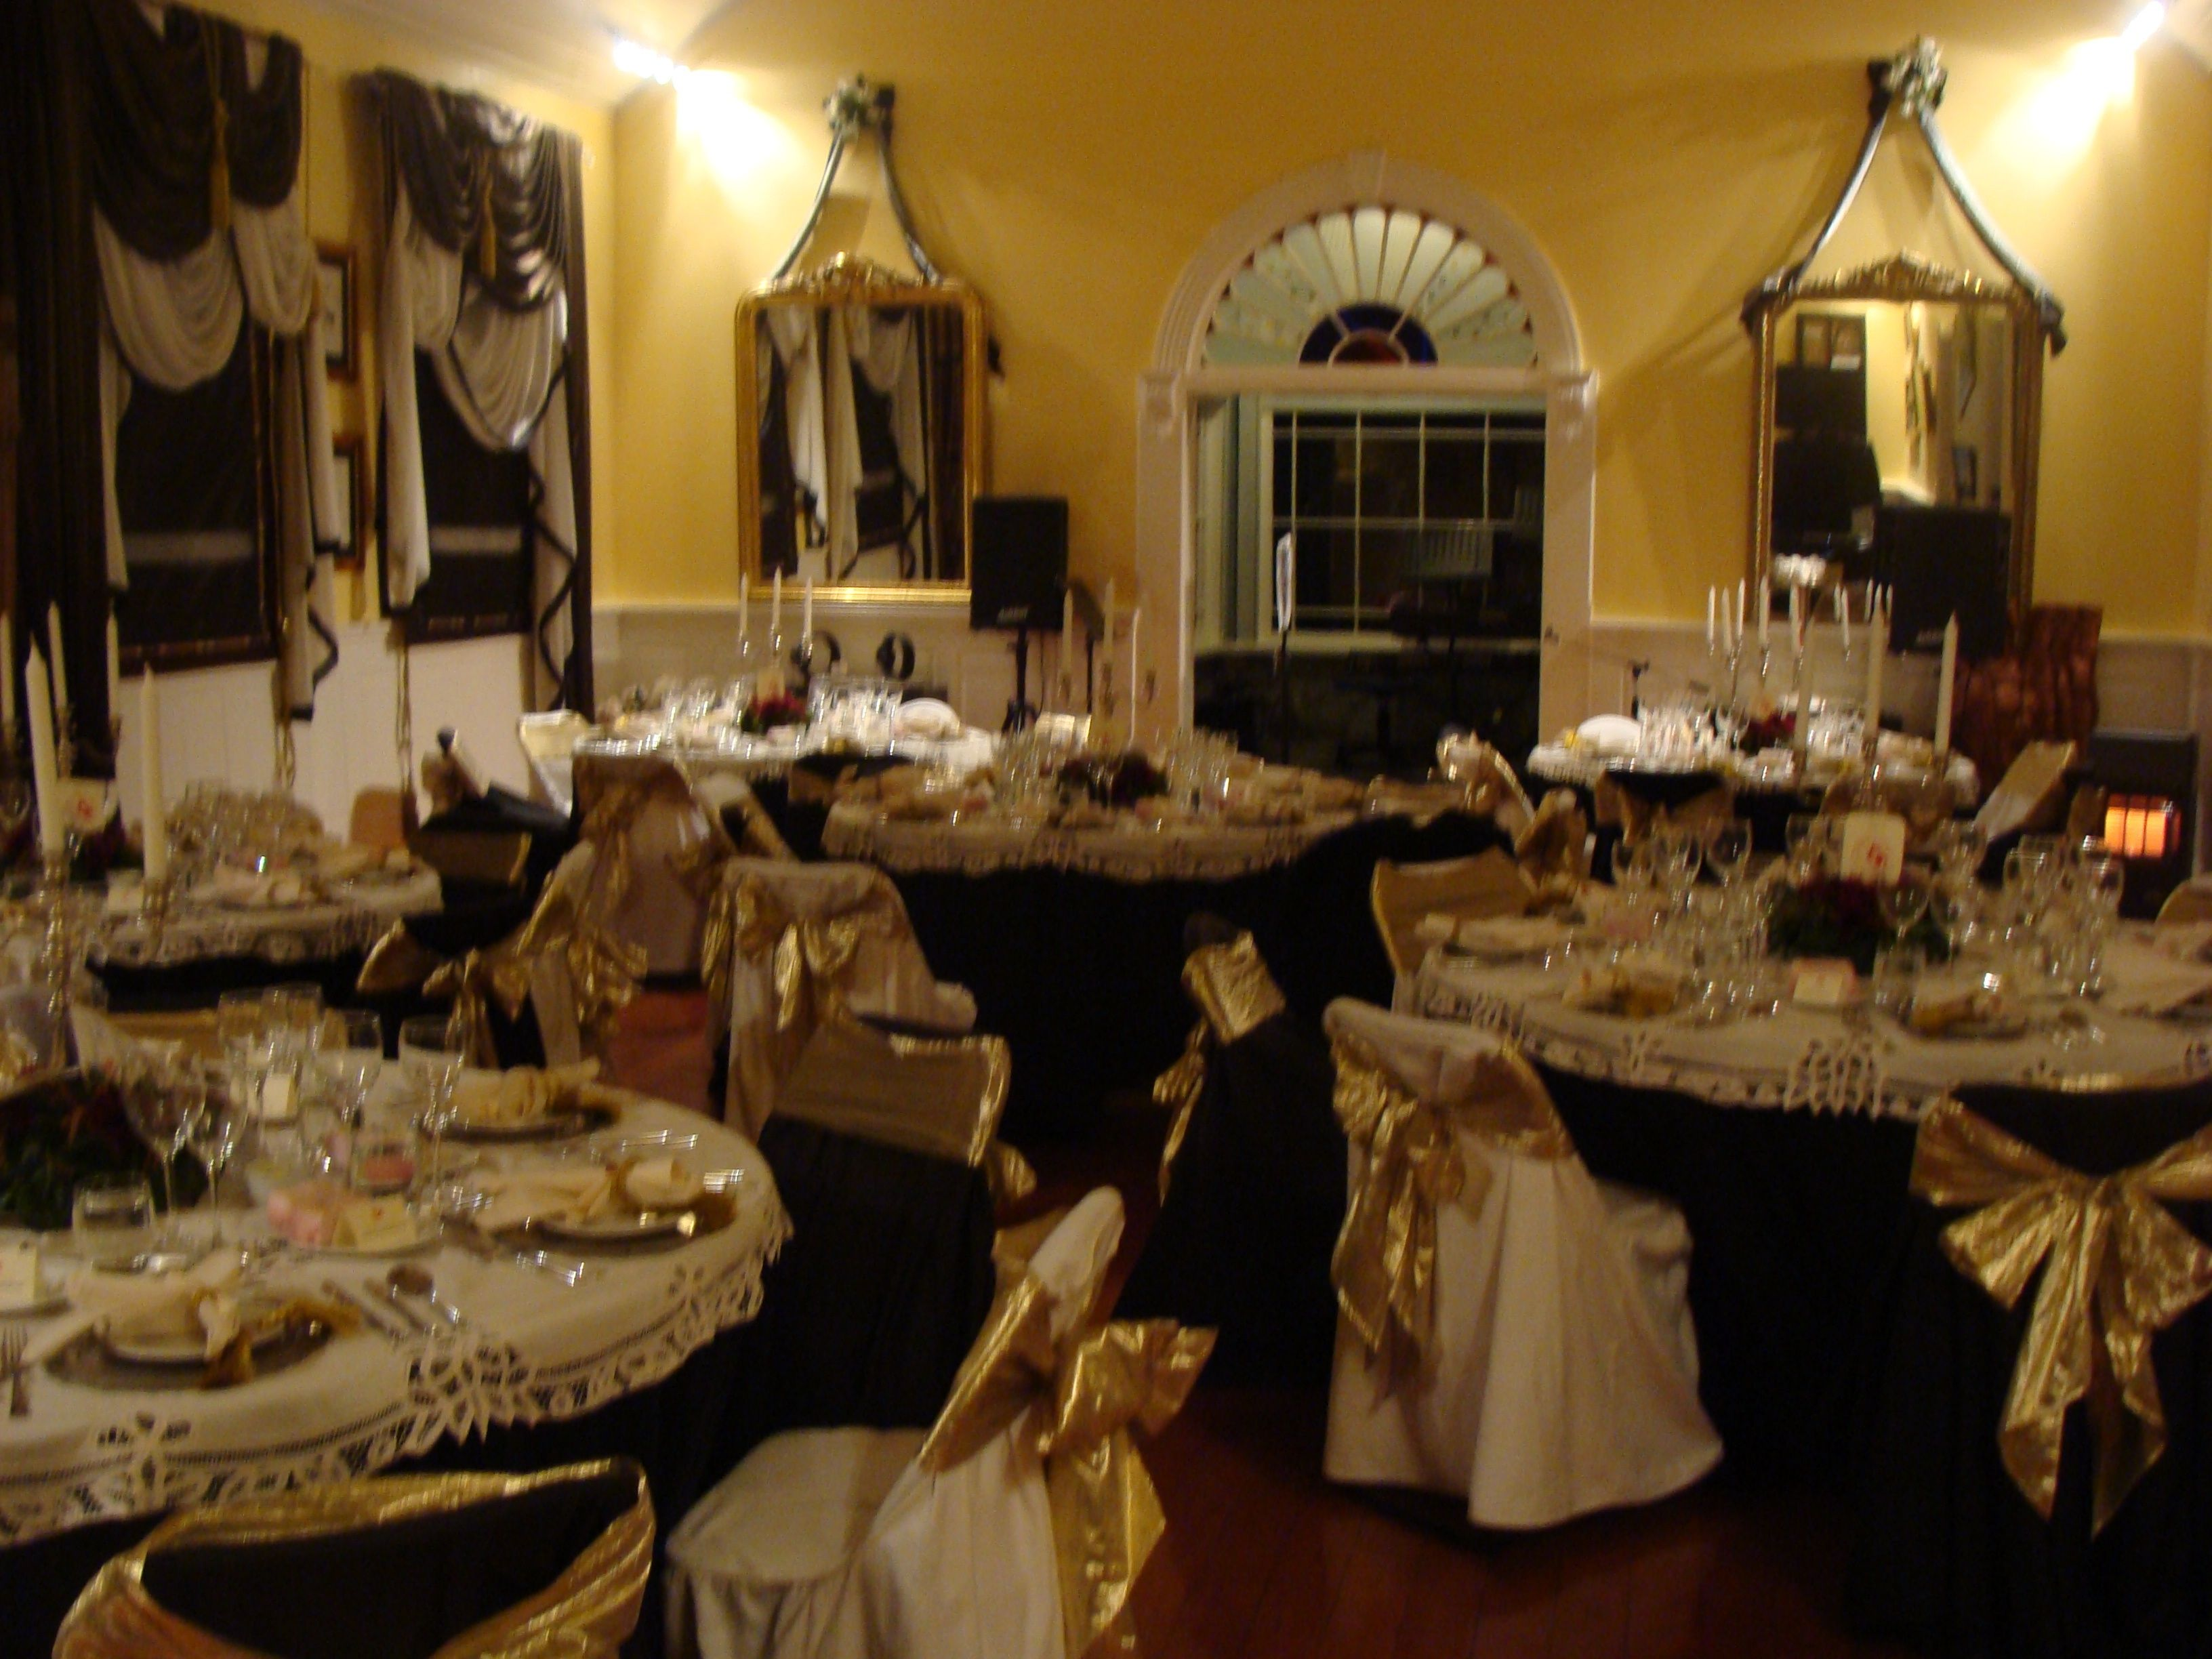 titanic ballroom settings: very ambitious for large numbers